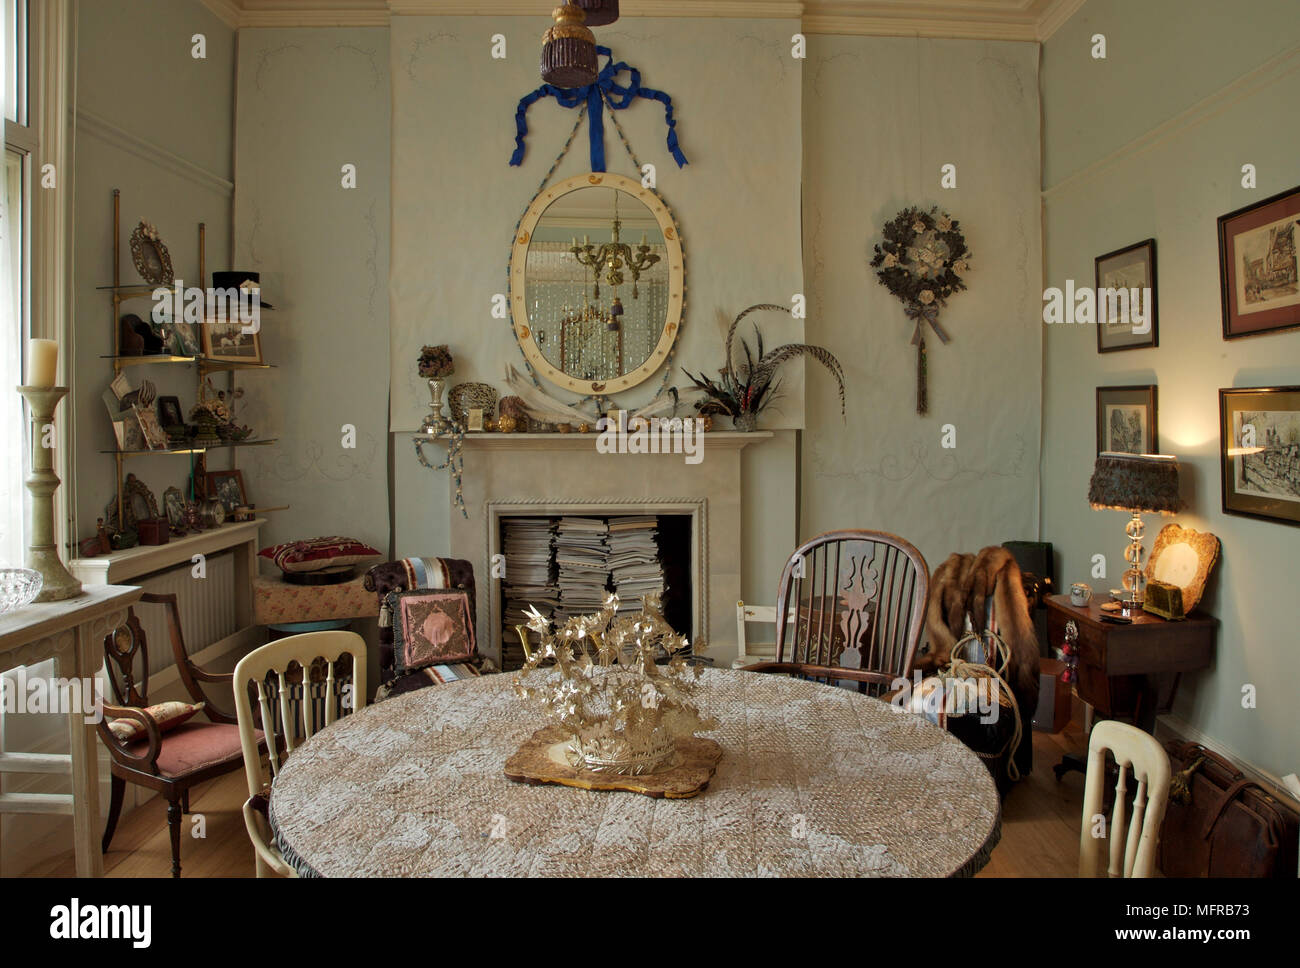 Bohemian dining room with circular table and fireplace Stock ...